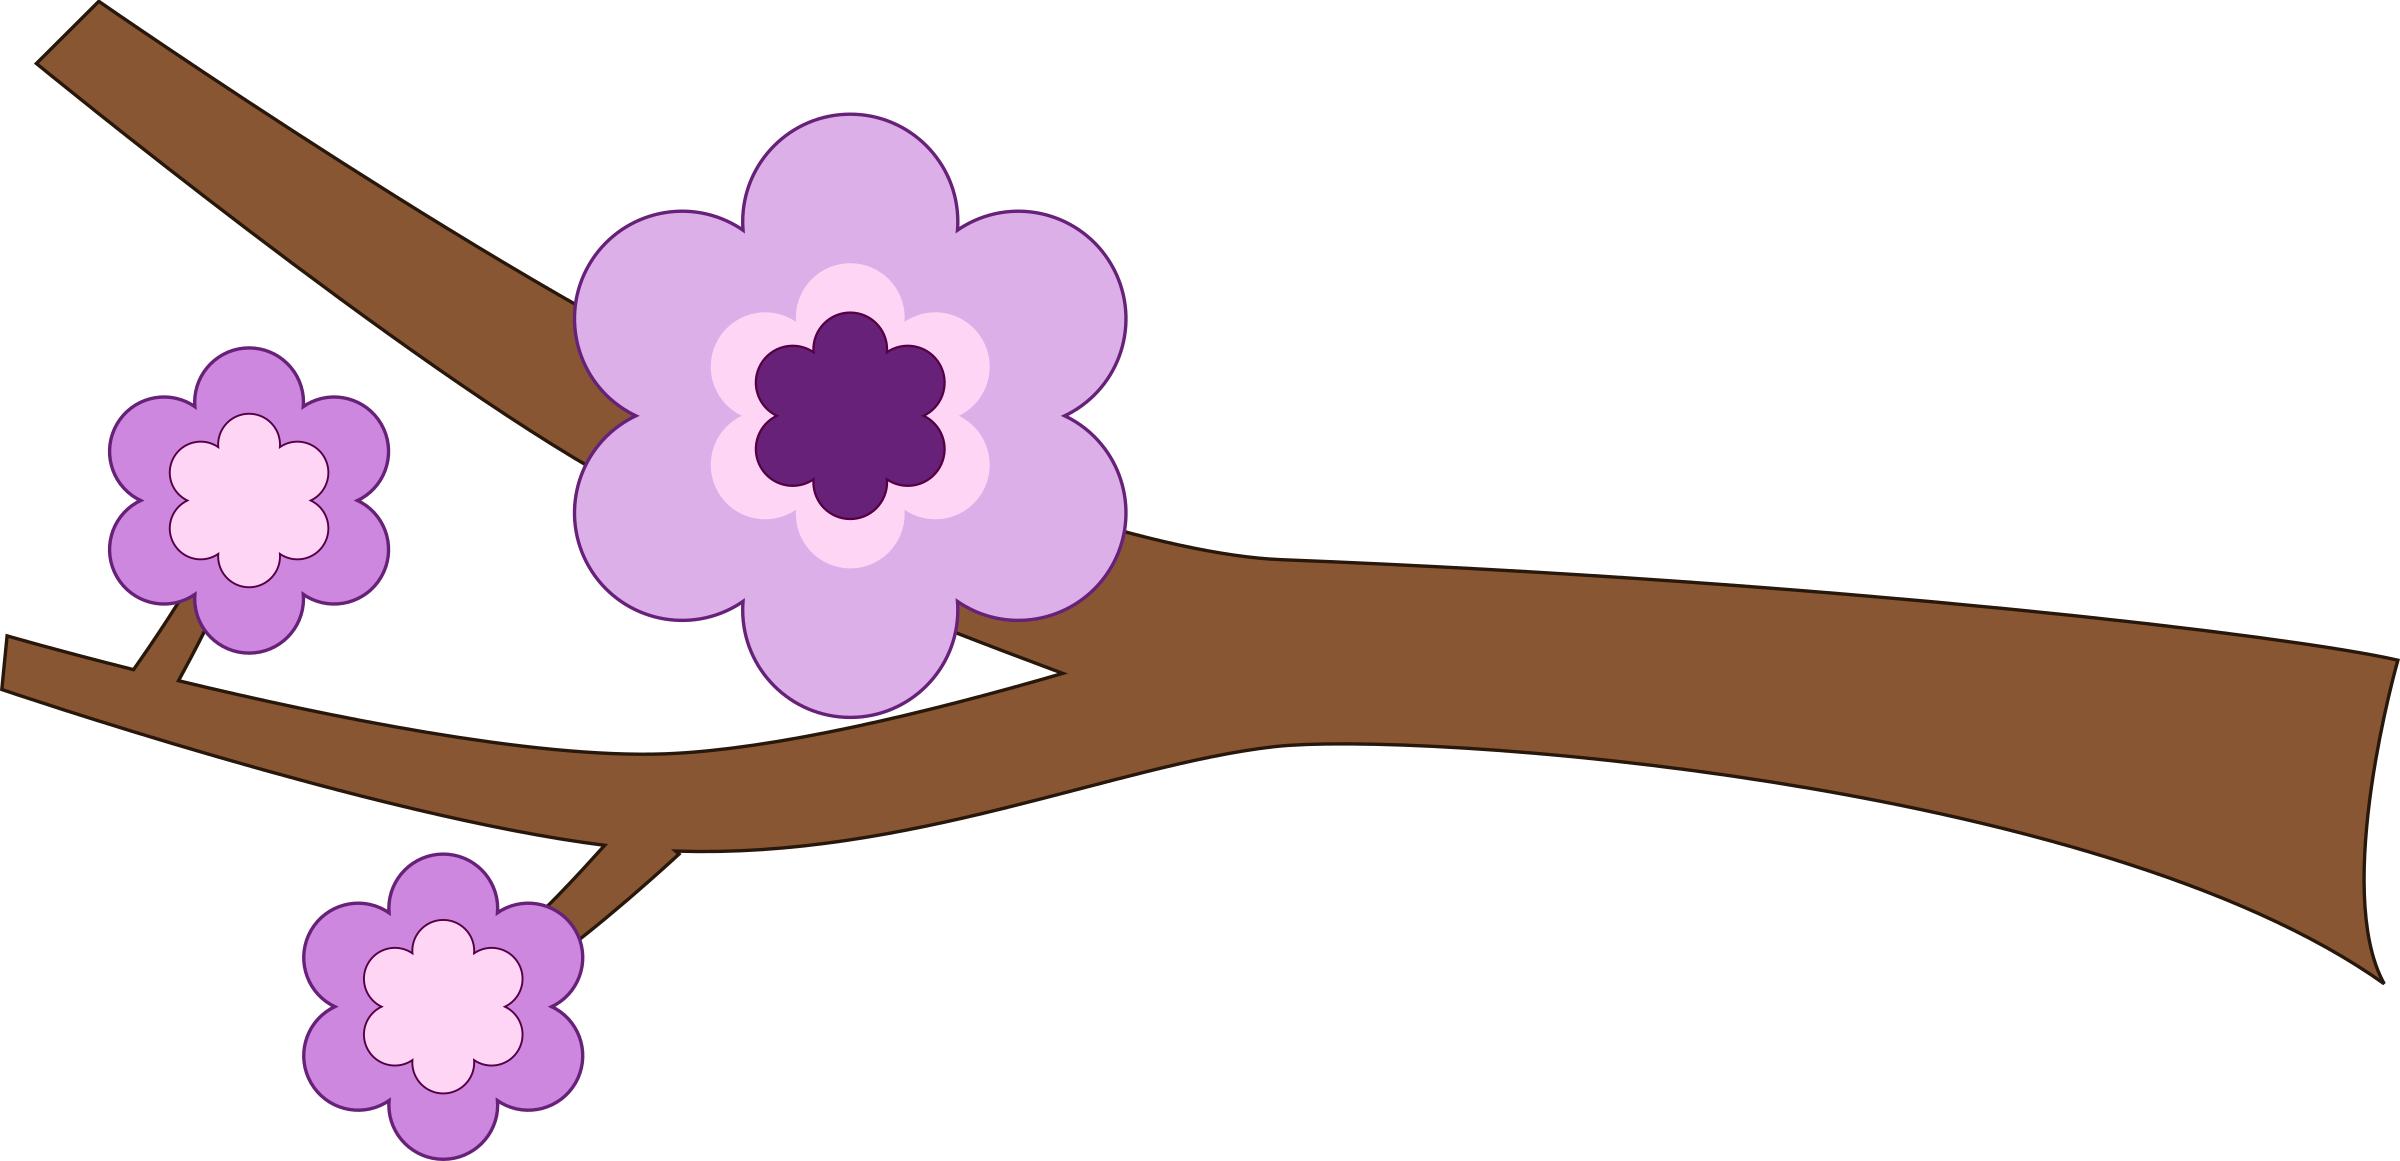 Flower branches clipart graphic royalty free Clipart - Purple Flower Longer branch graphic royalty free